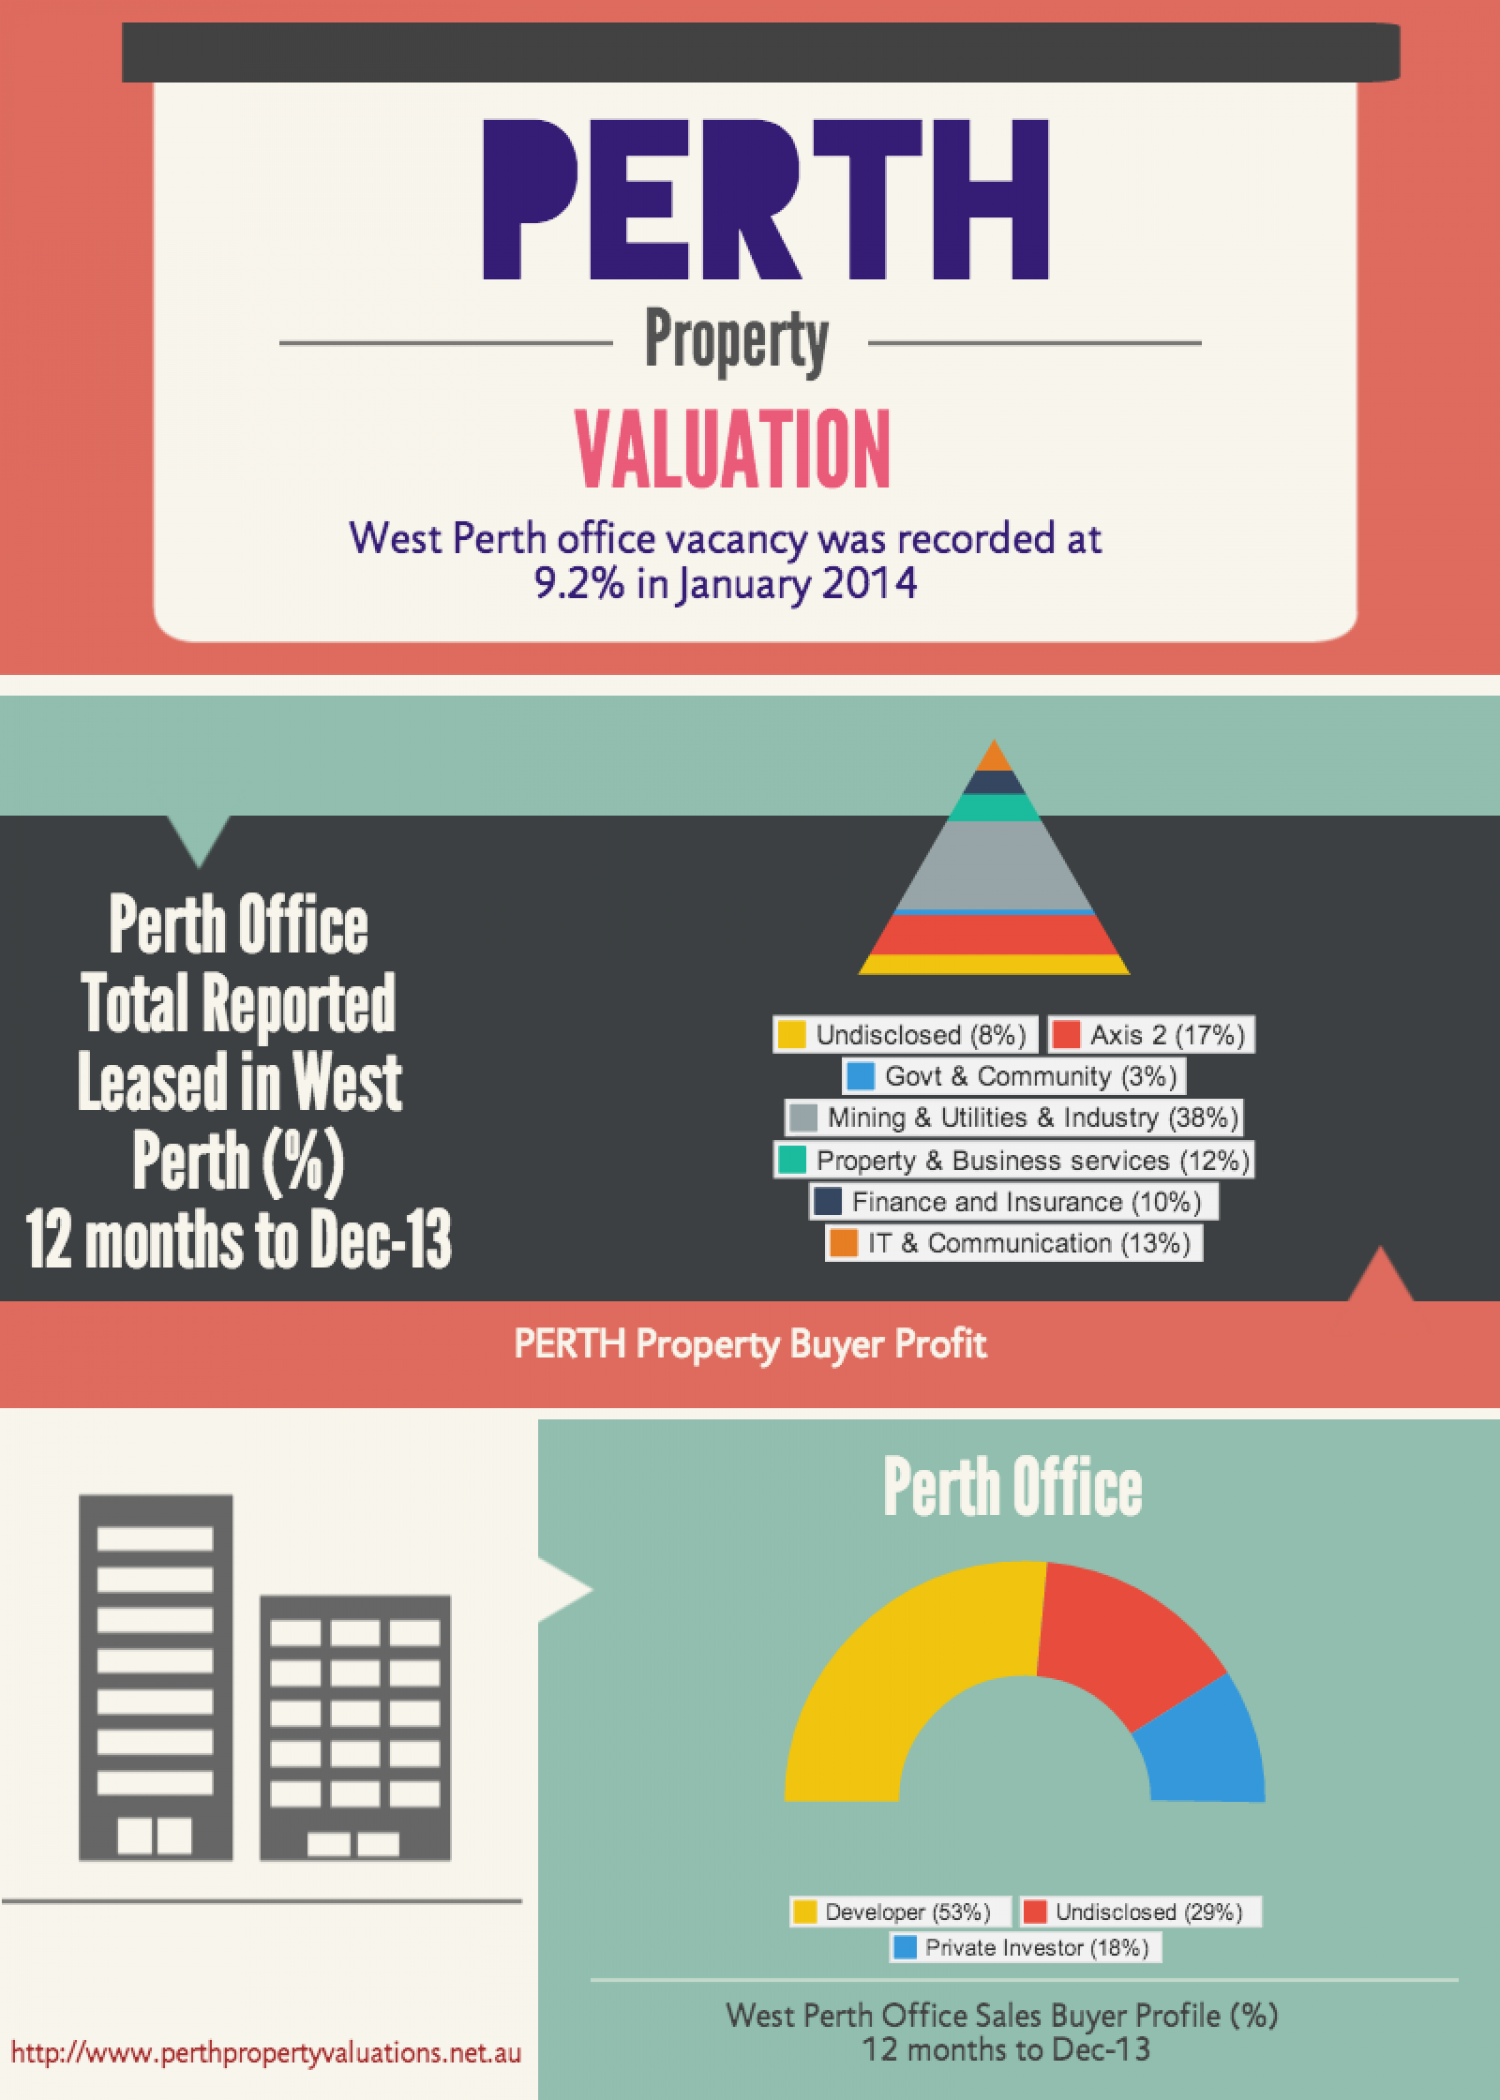 Perth Property Valuation Infographic